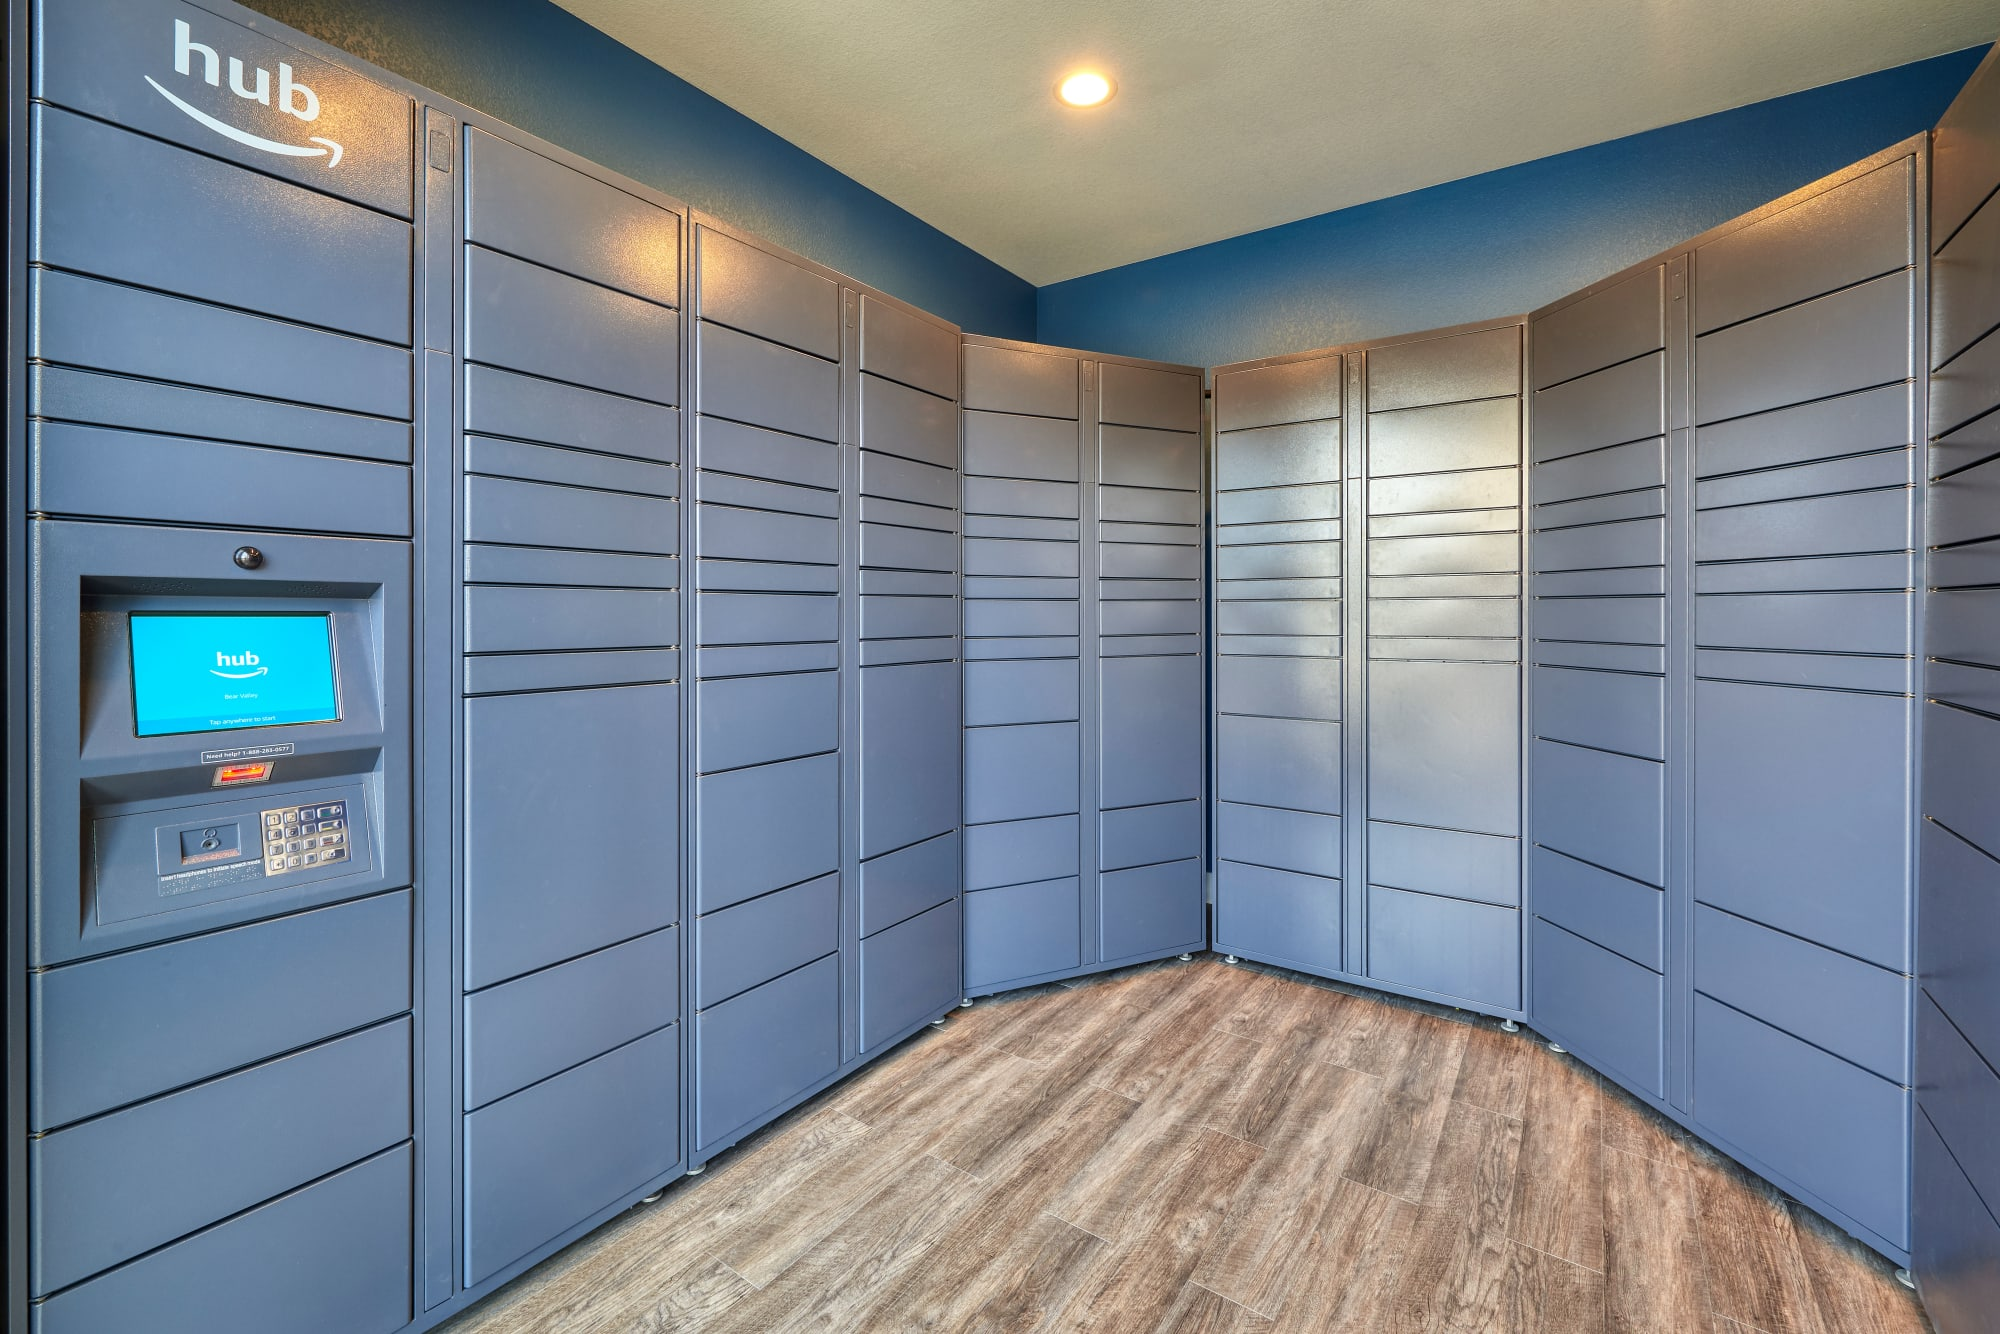 Package lockers with Amazon HUB at Bear Valley Park in Denver, Colorado